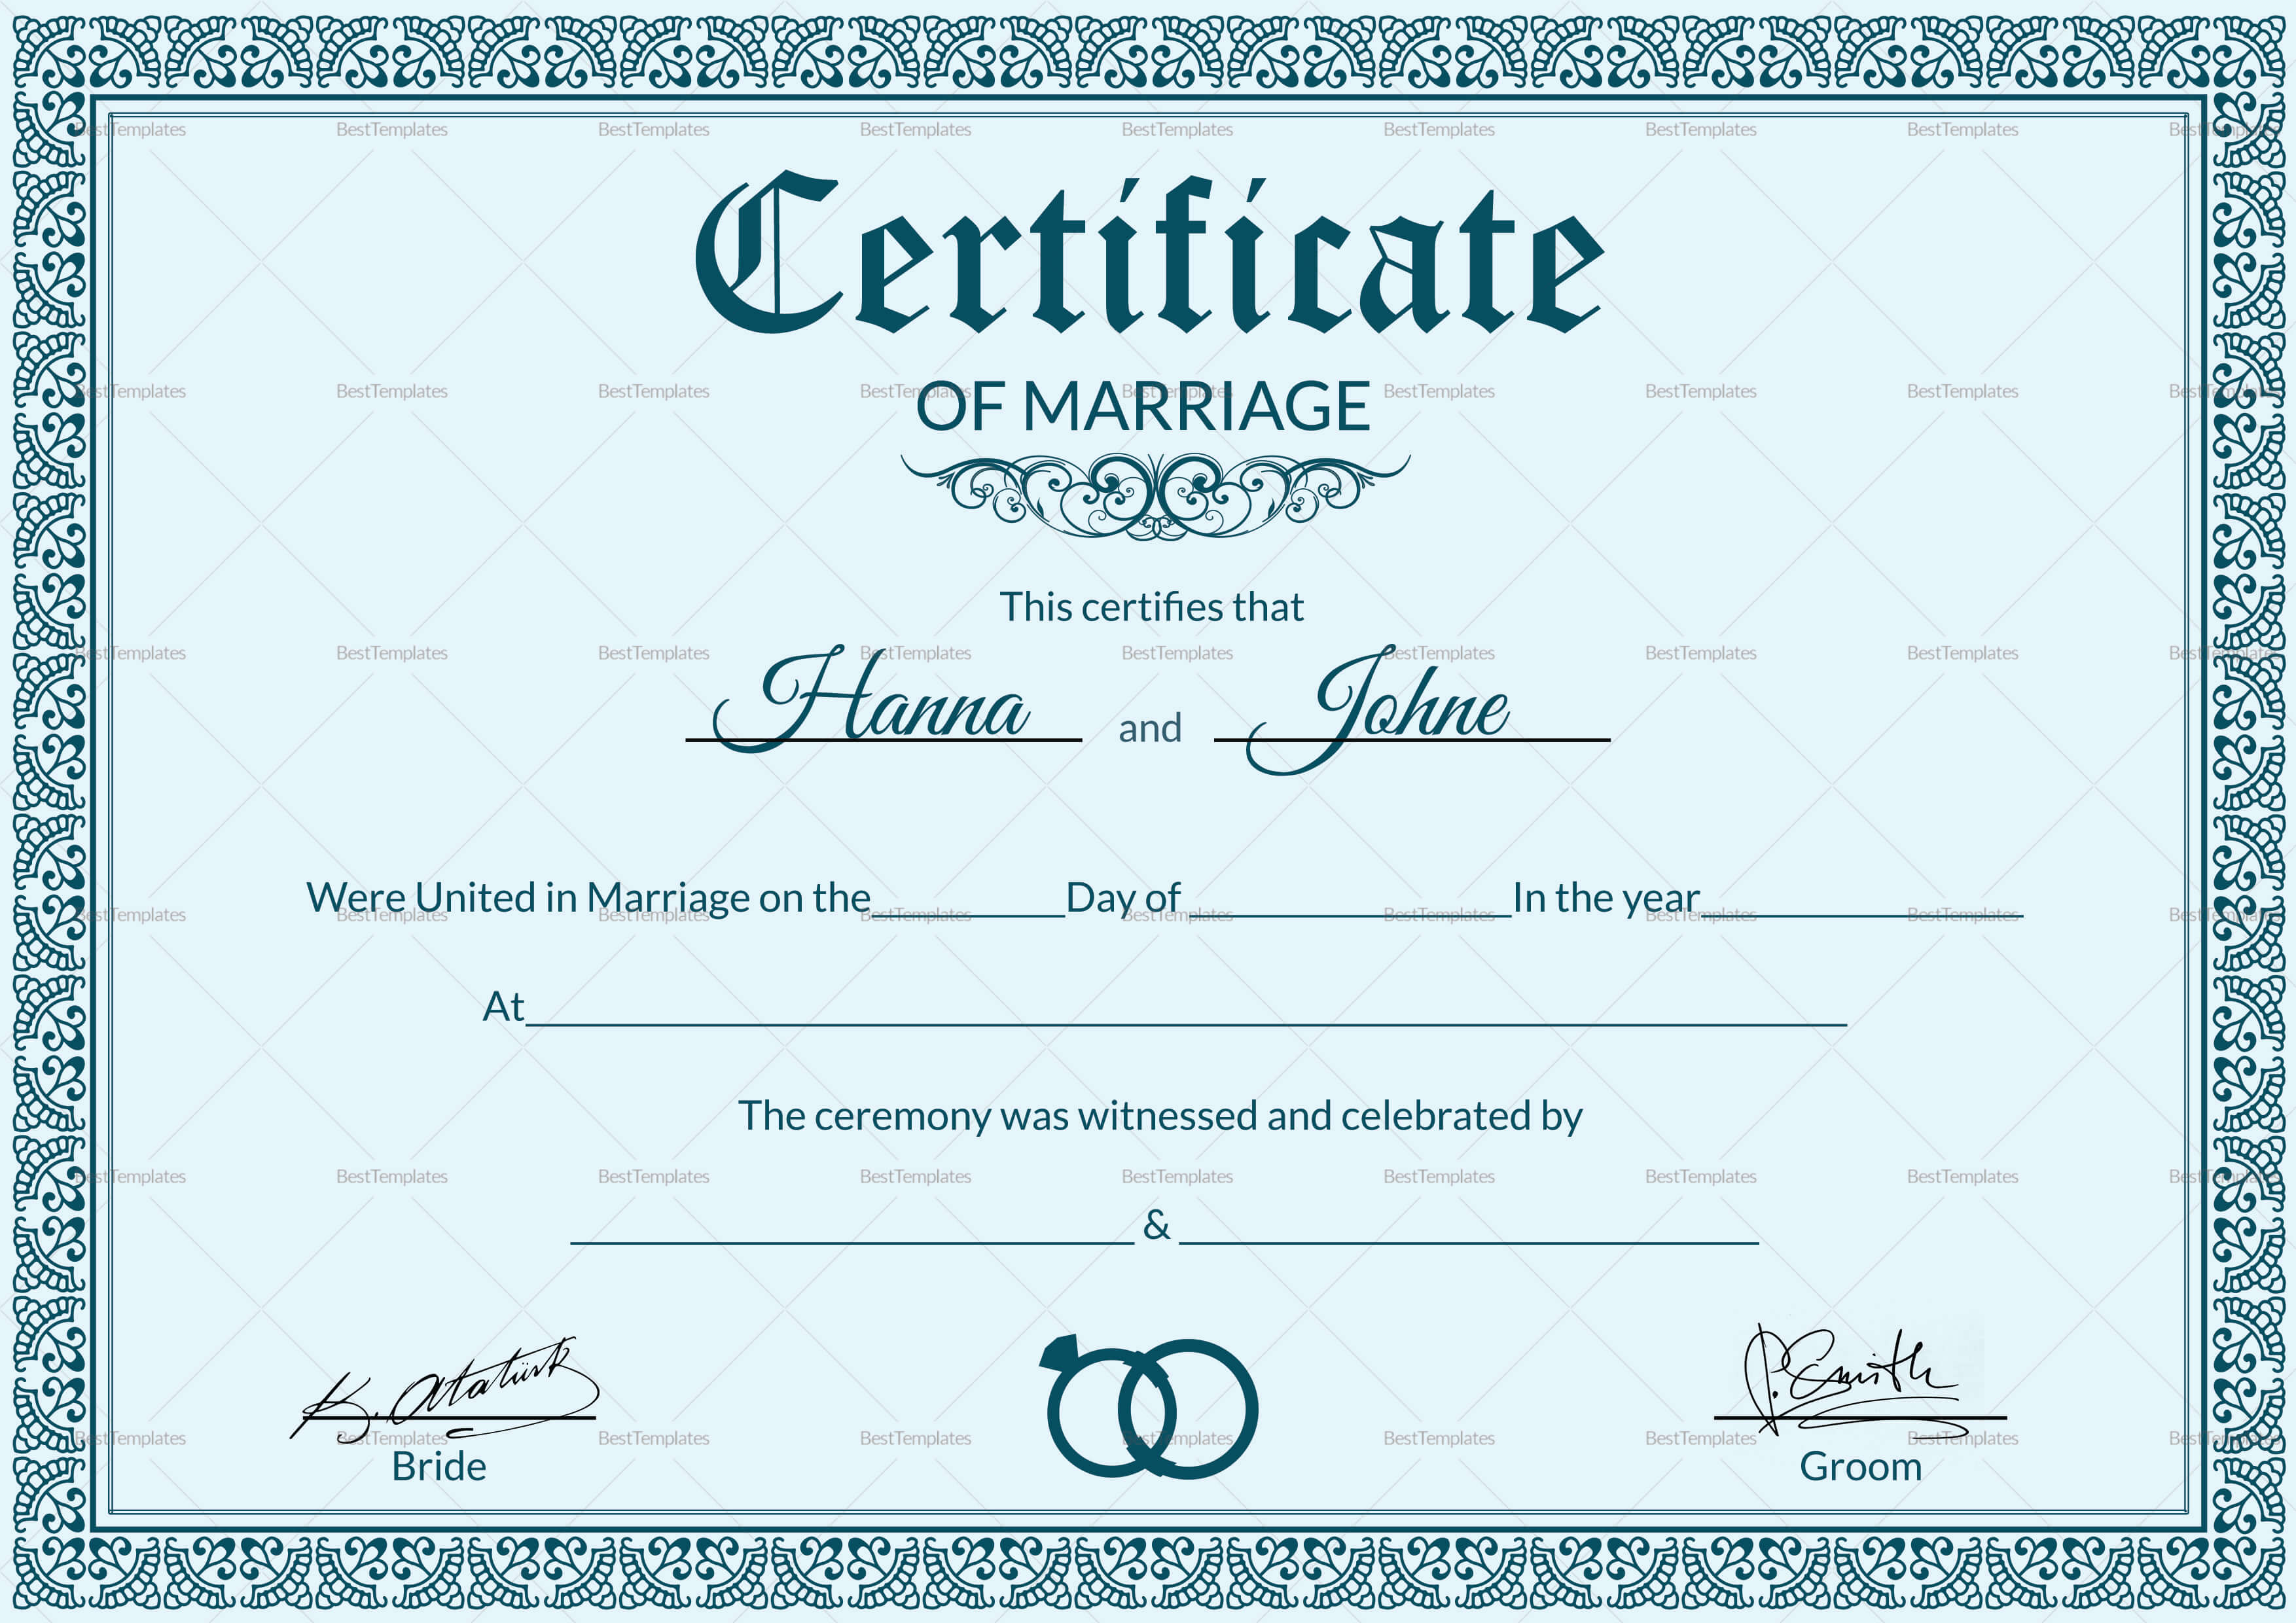 Best Novelty Documents, Passports, Id Cards, Driver License throughout Novelty Birth Certificate Template